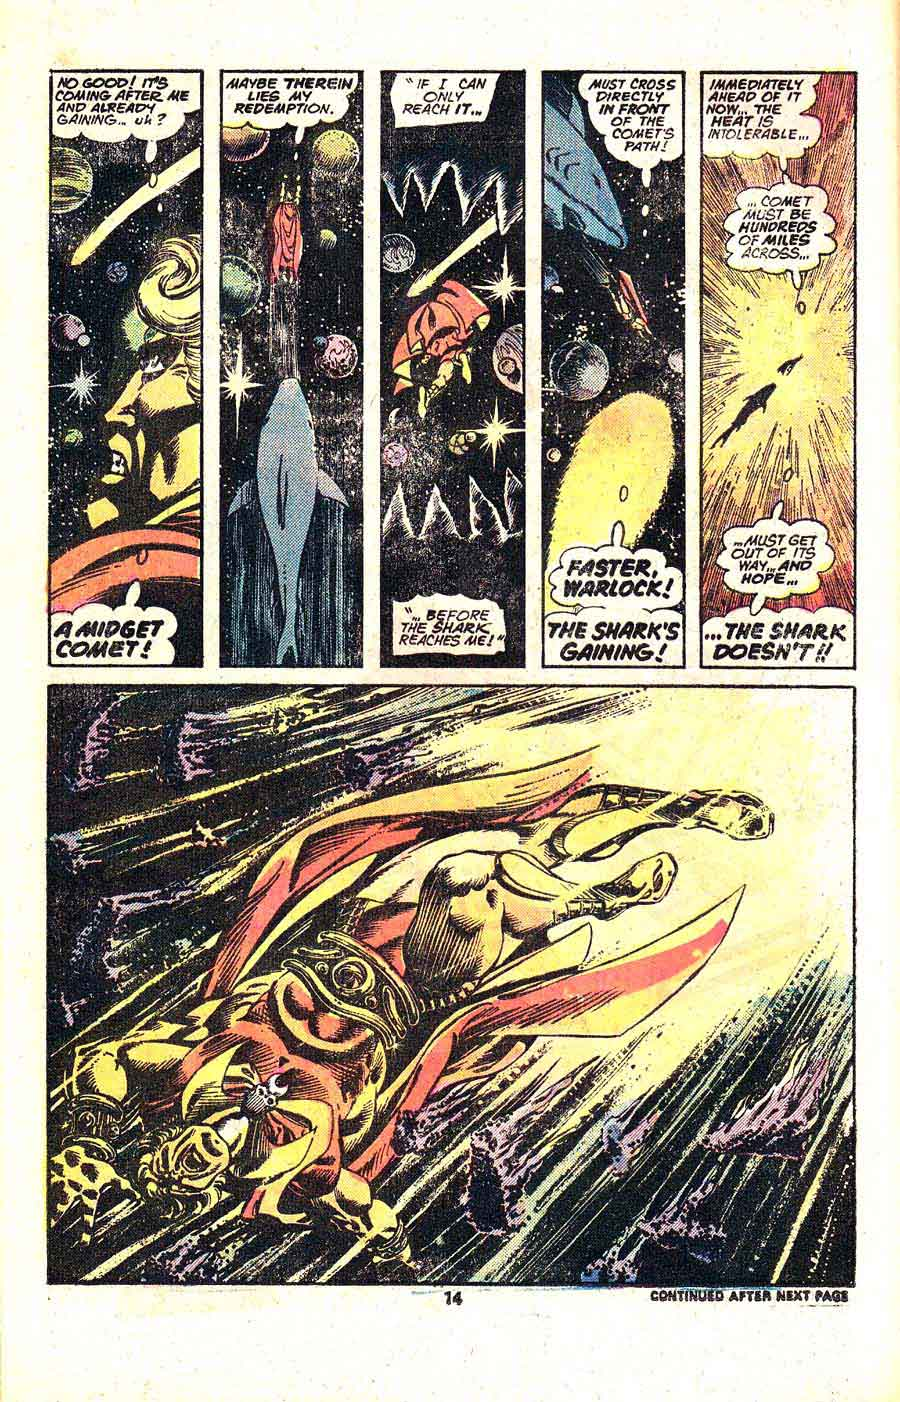 Warlock v1 #14 marvel 1970s bronze age comic book page art by Jim Starlin